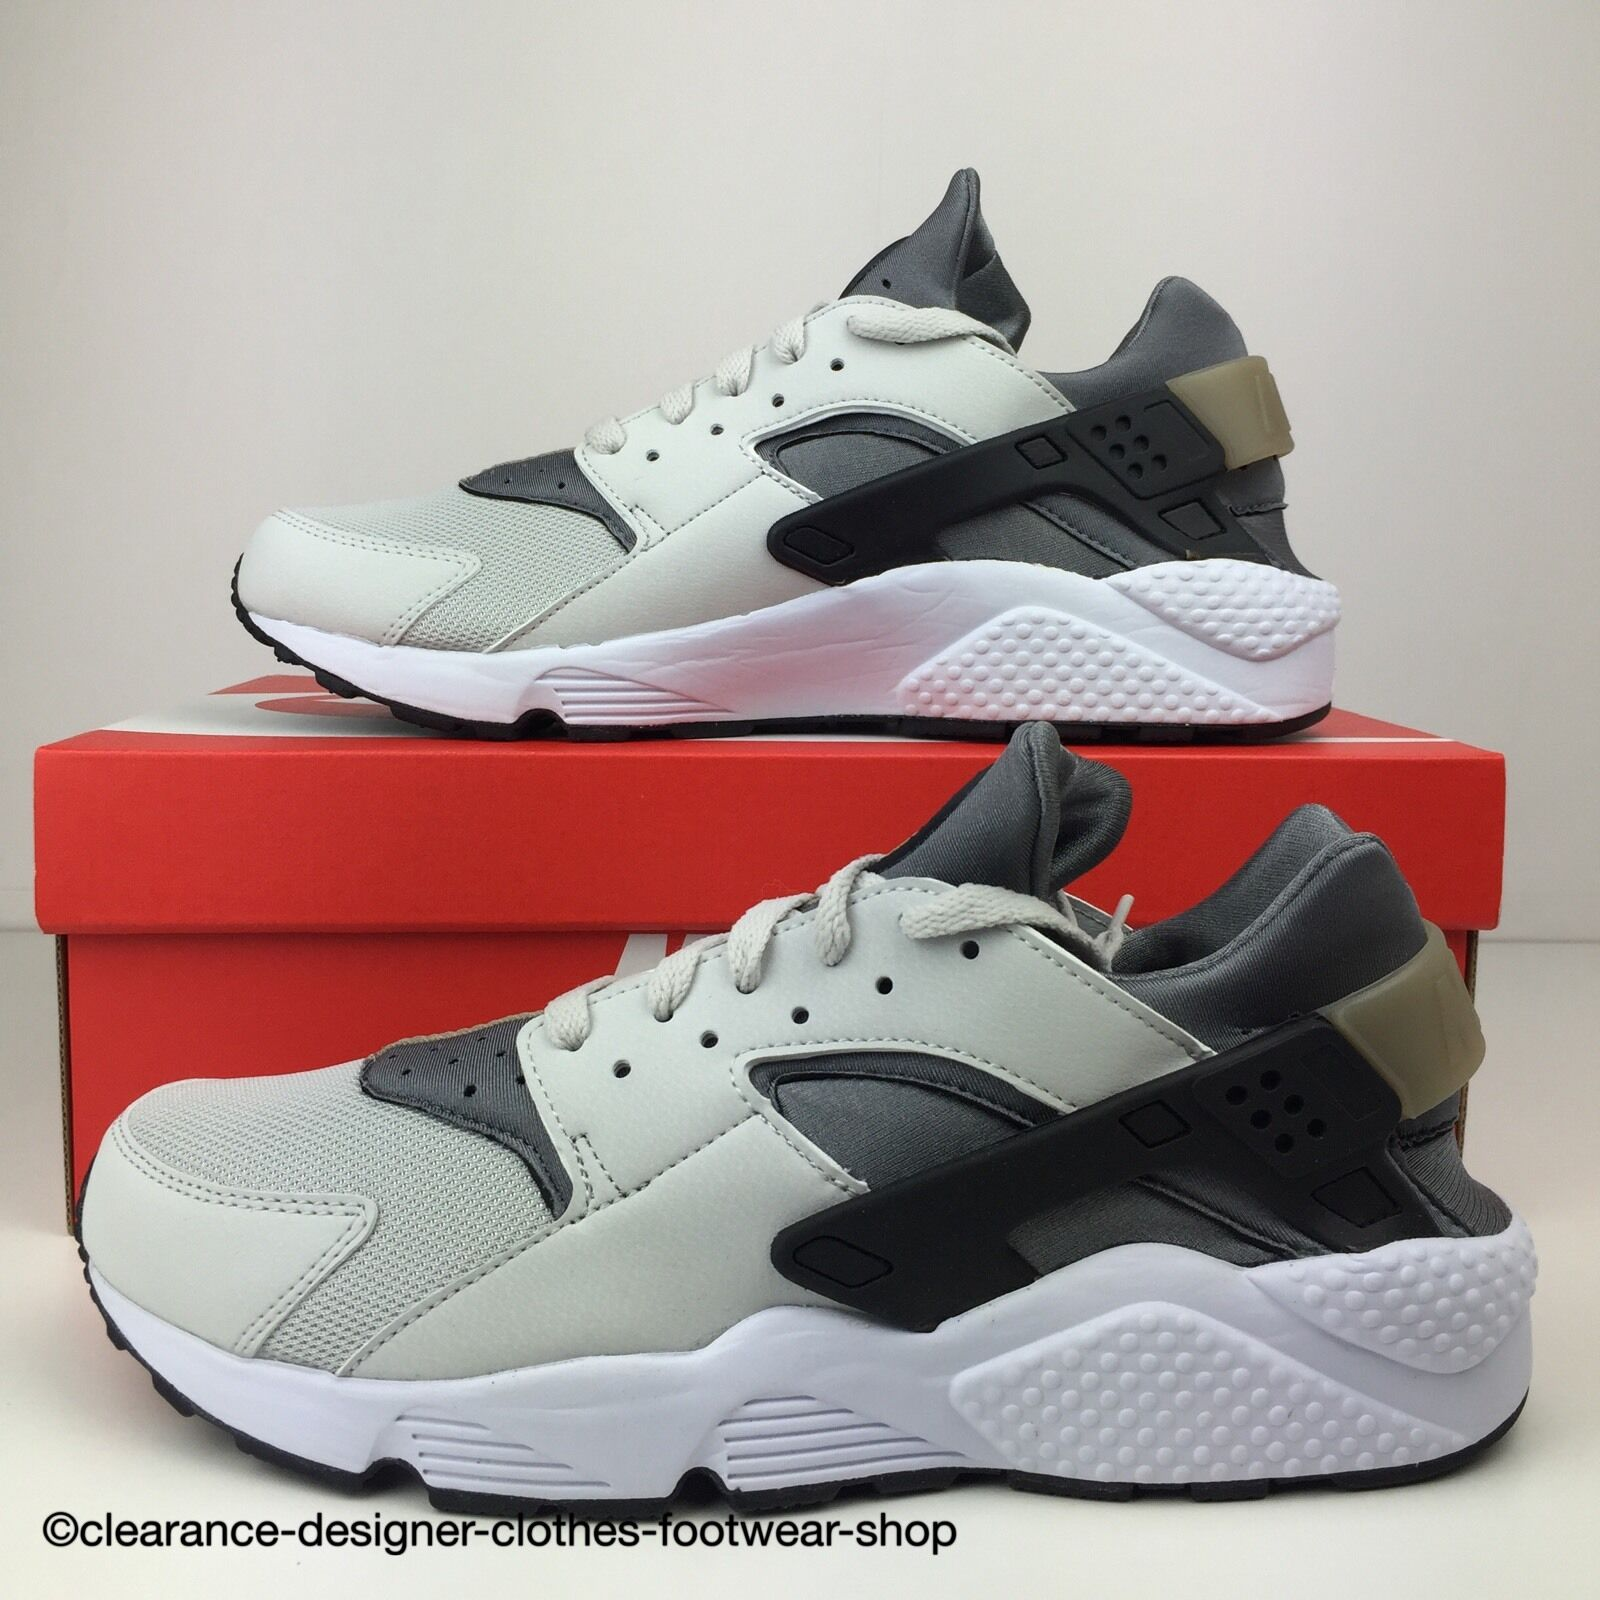 NIKE AIR HUARACHE TRAINERS Hommes SNEAKERS CASUAL RETRO SHOES11120